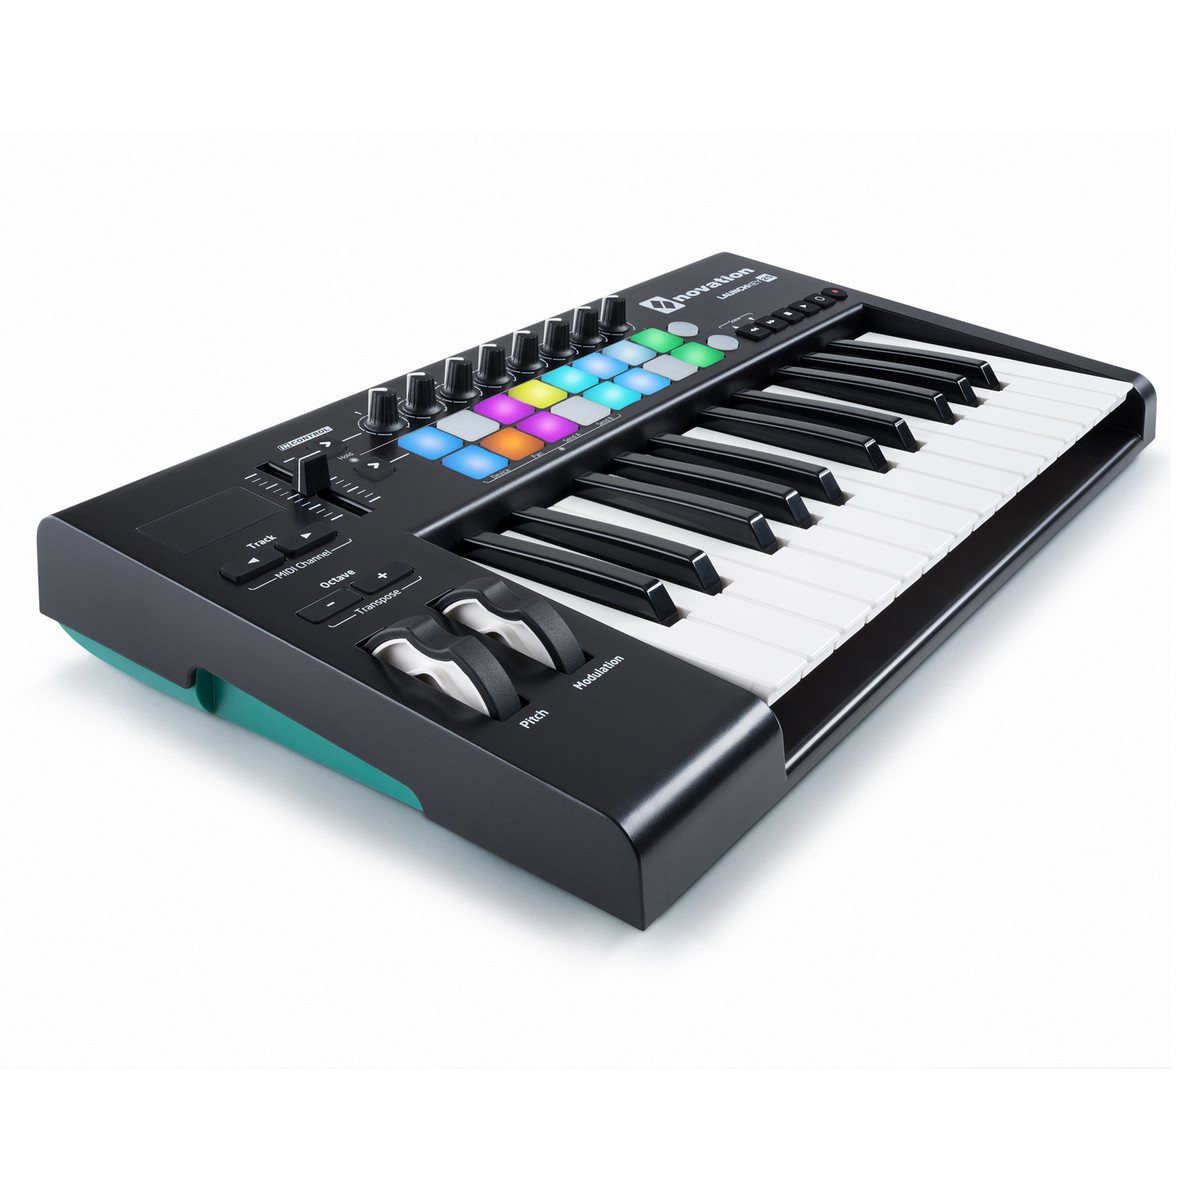 novation launchkey 25 mk2 midi controller keyboard at gear4music. Black Bedroom Furniture Sets. Home Design Ideas